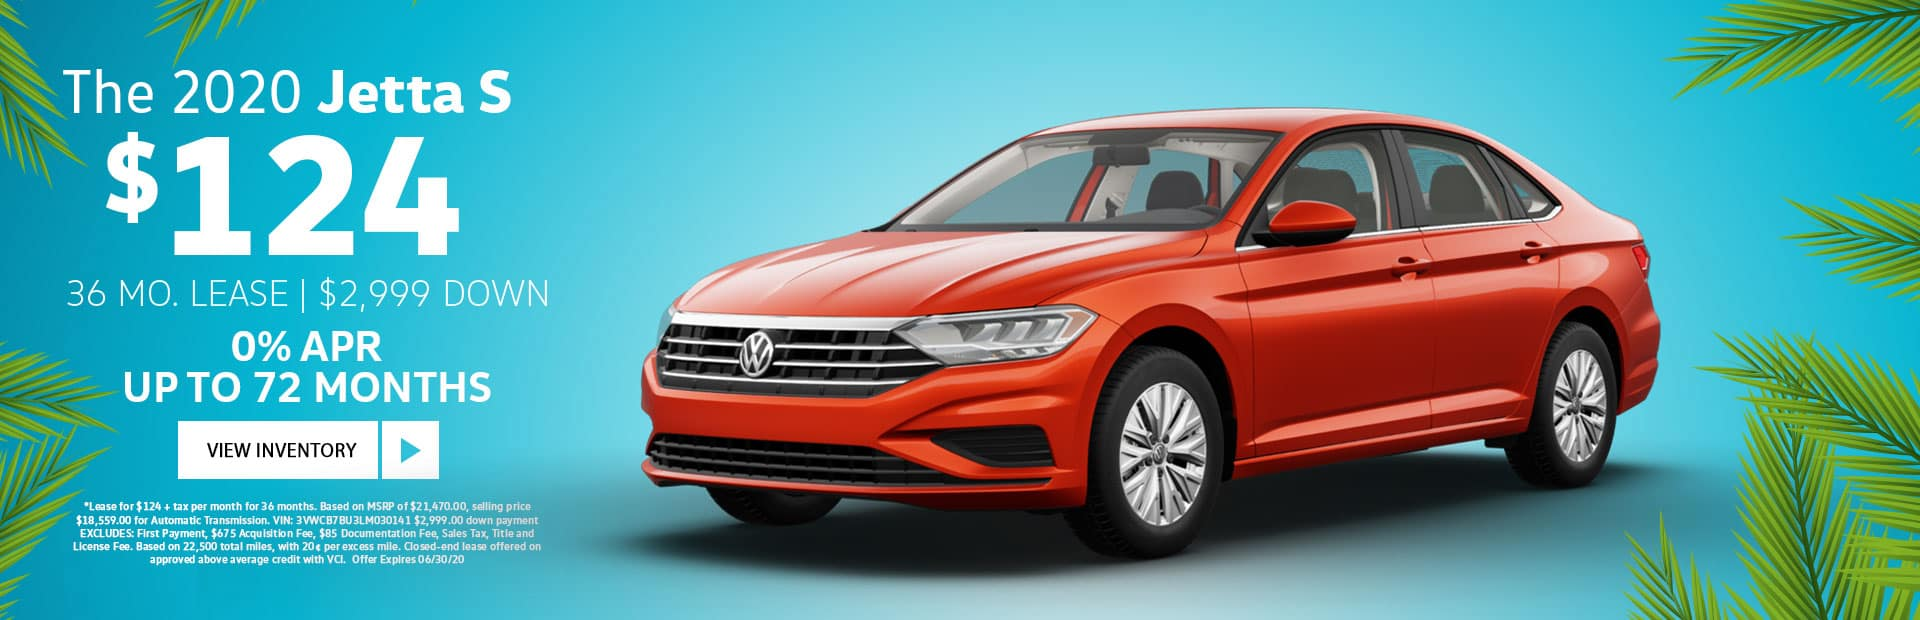 new-2020-jetta-lease-special-in-los-angeles